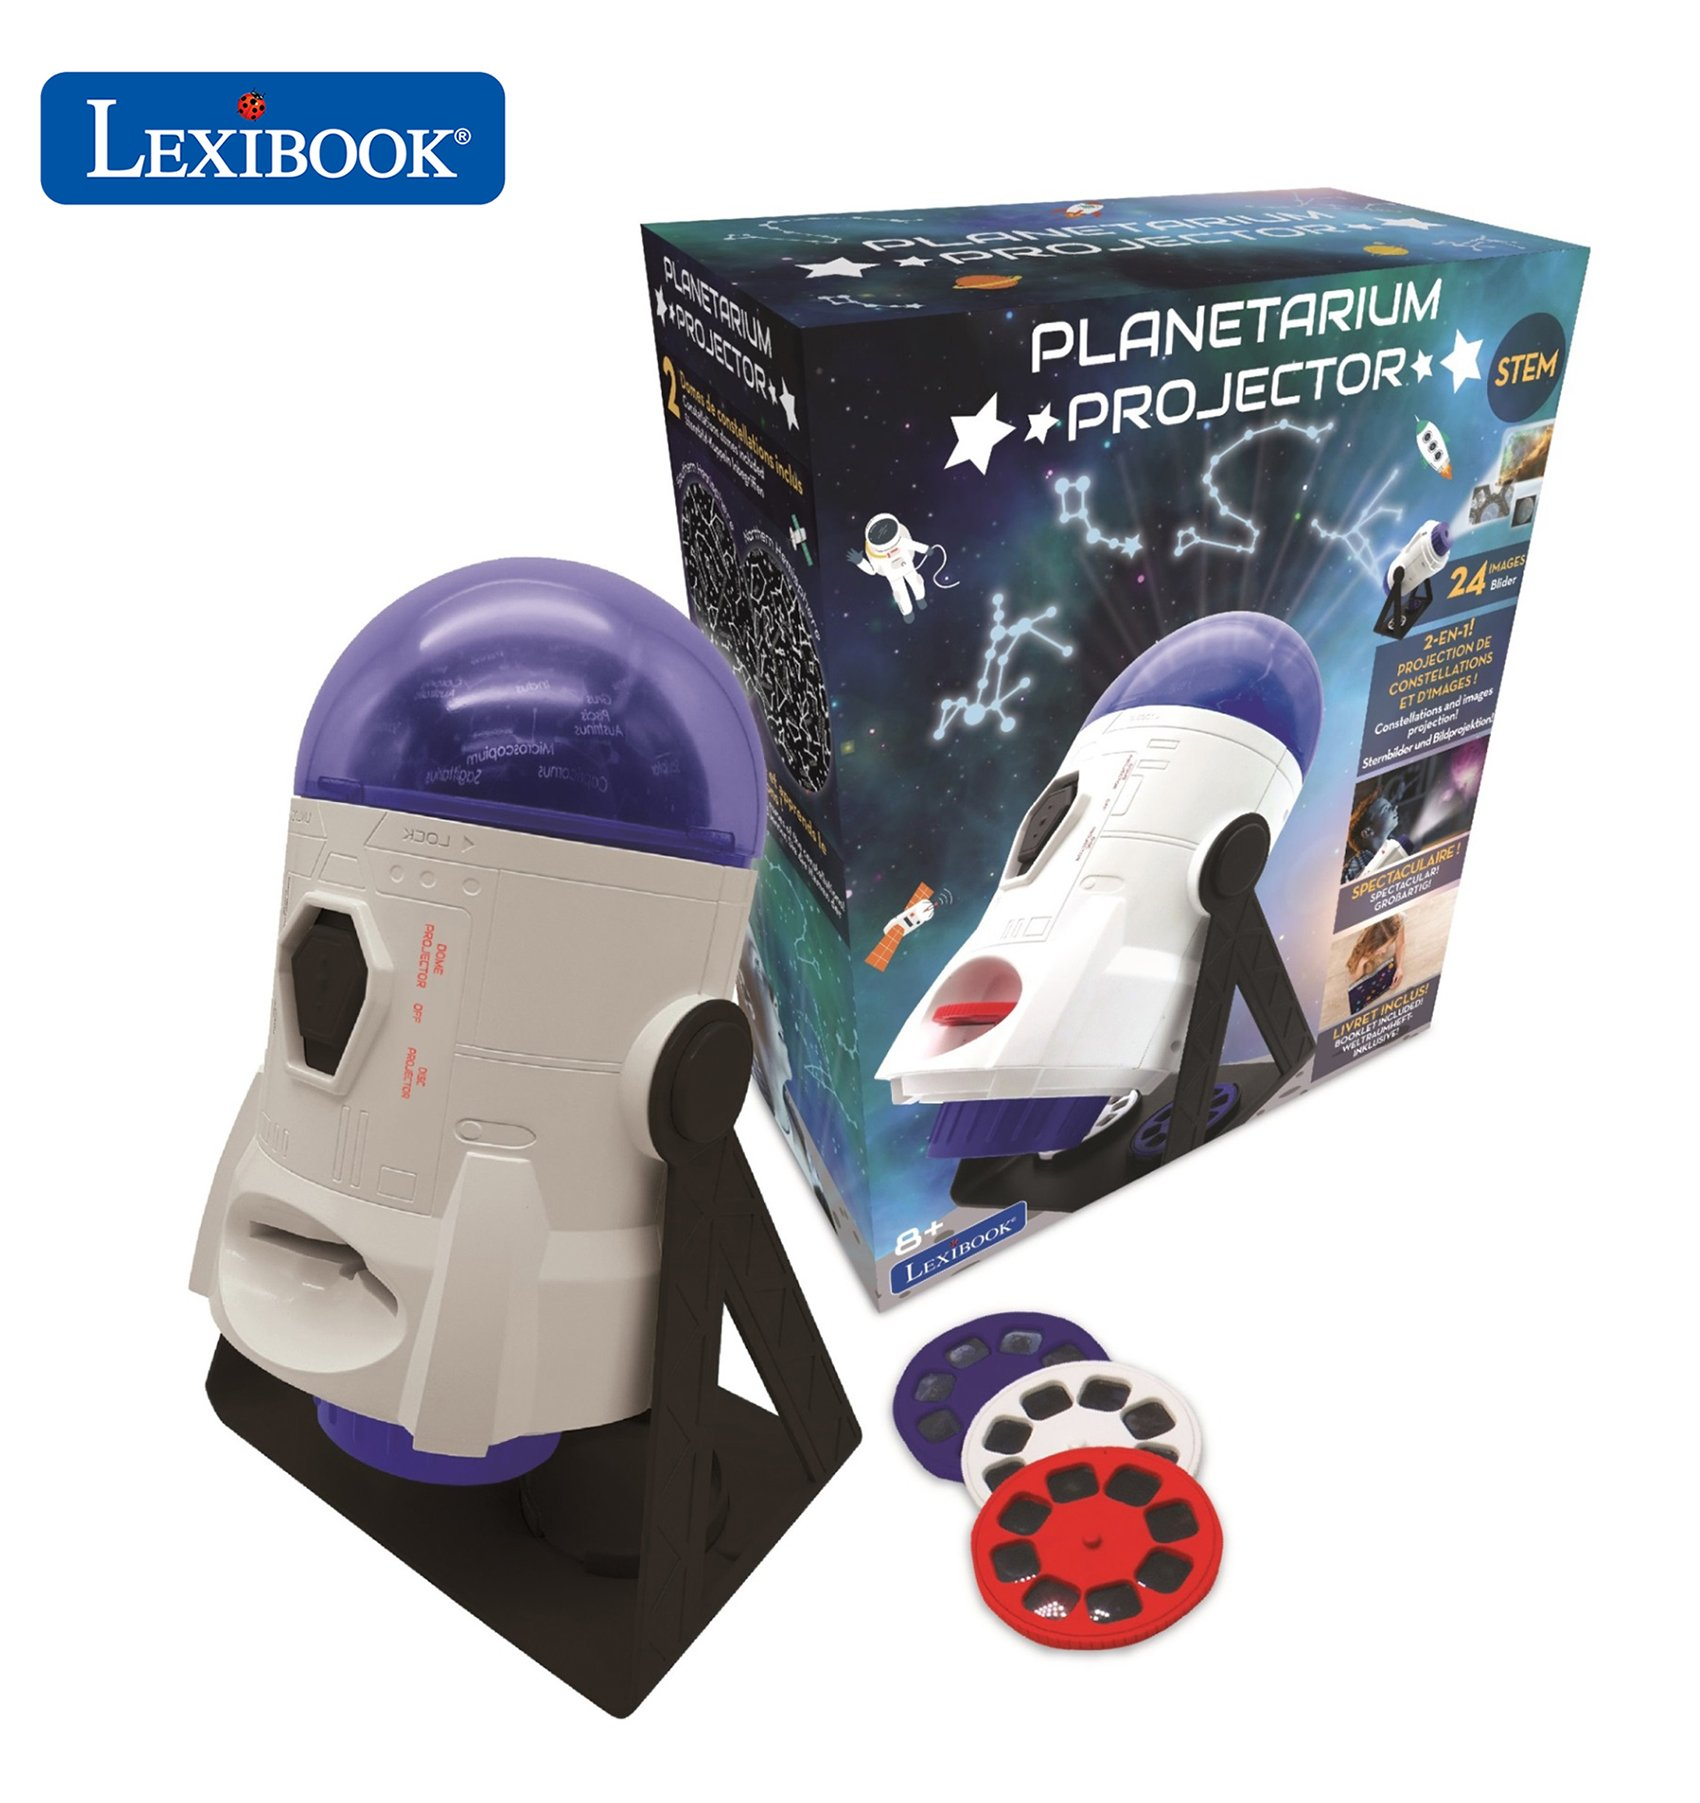 Lexibook - 360° Planetarium Projector incl 24 projecting pictures, map of constellations and educational booklet (NLJ180)